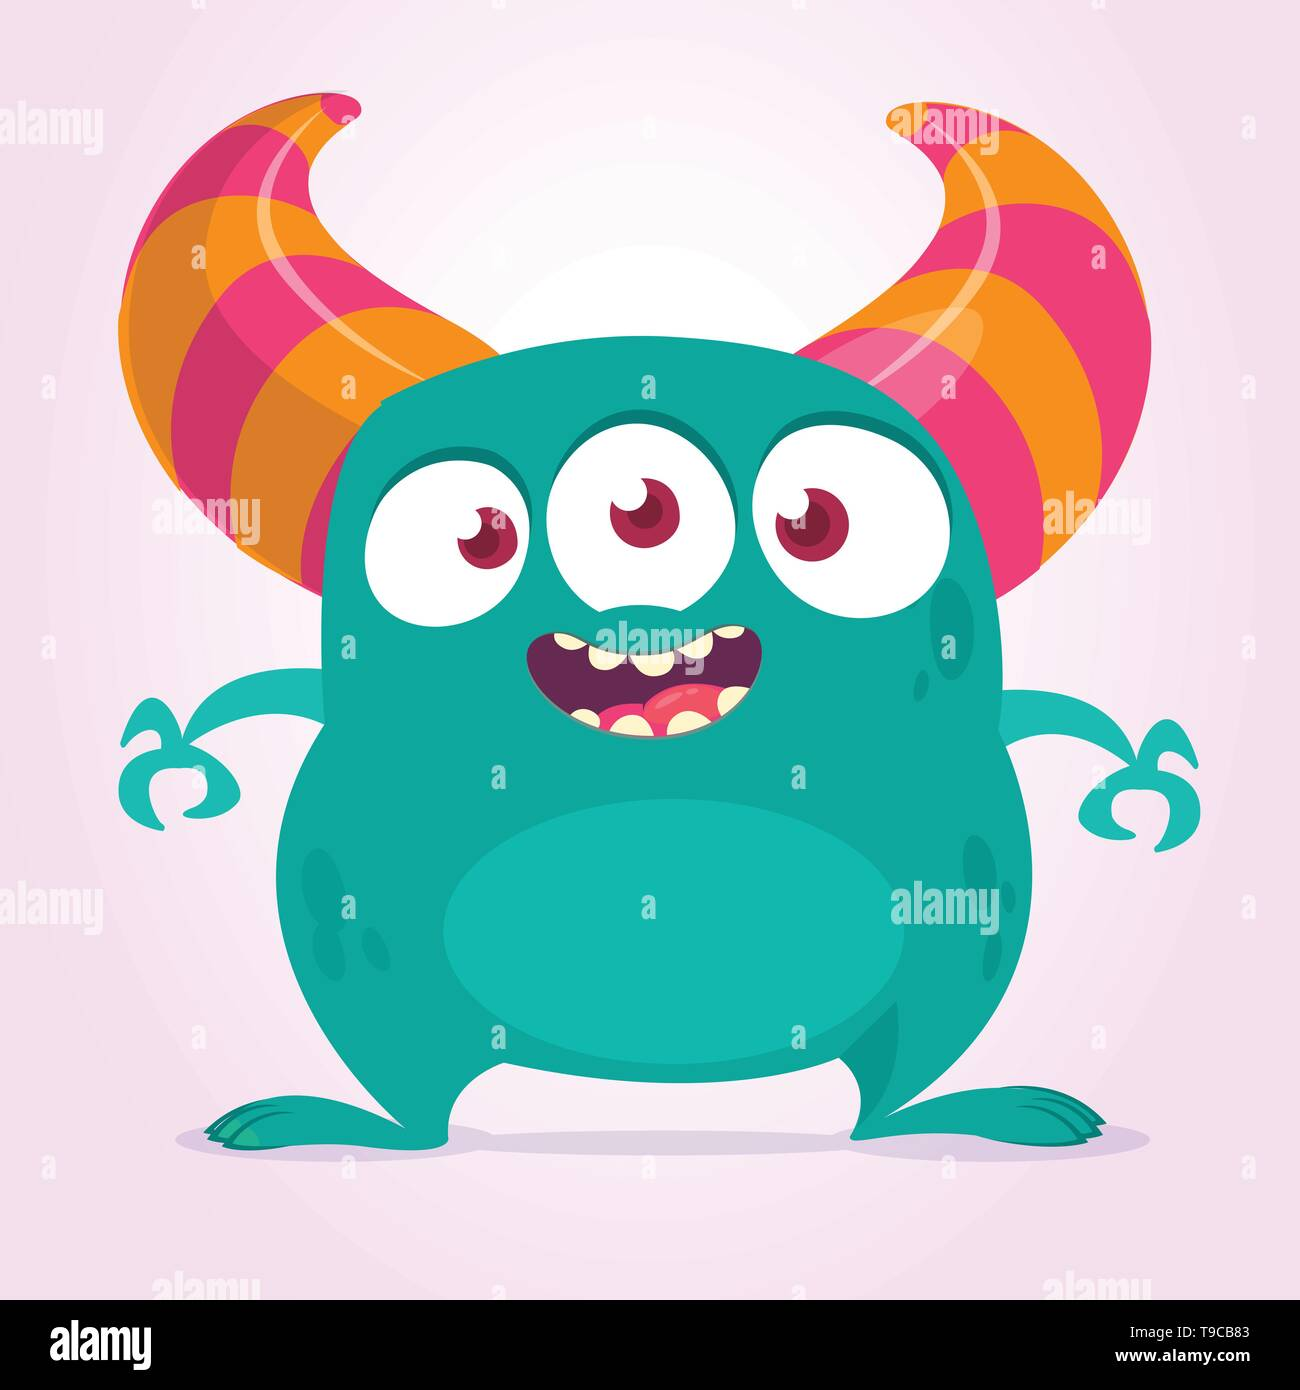 Cool cartoon monster with three eyes. Vector blue monster illustration. Halloween design - Stock Image